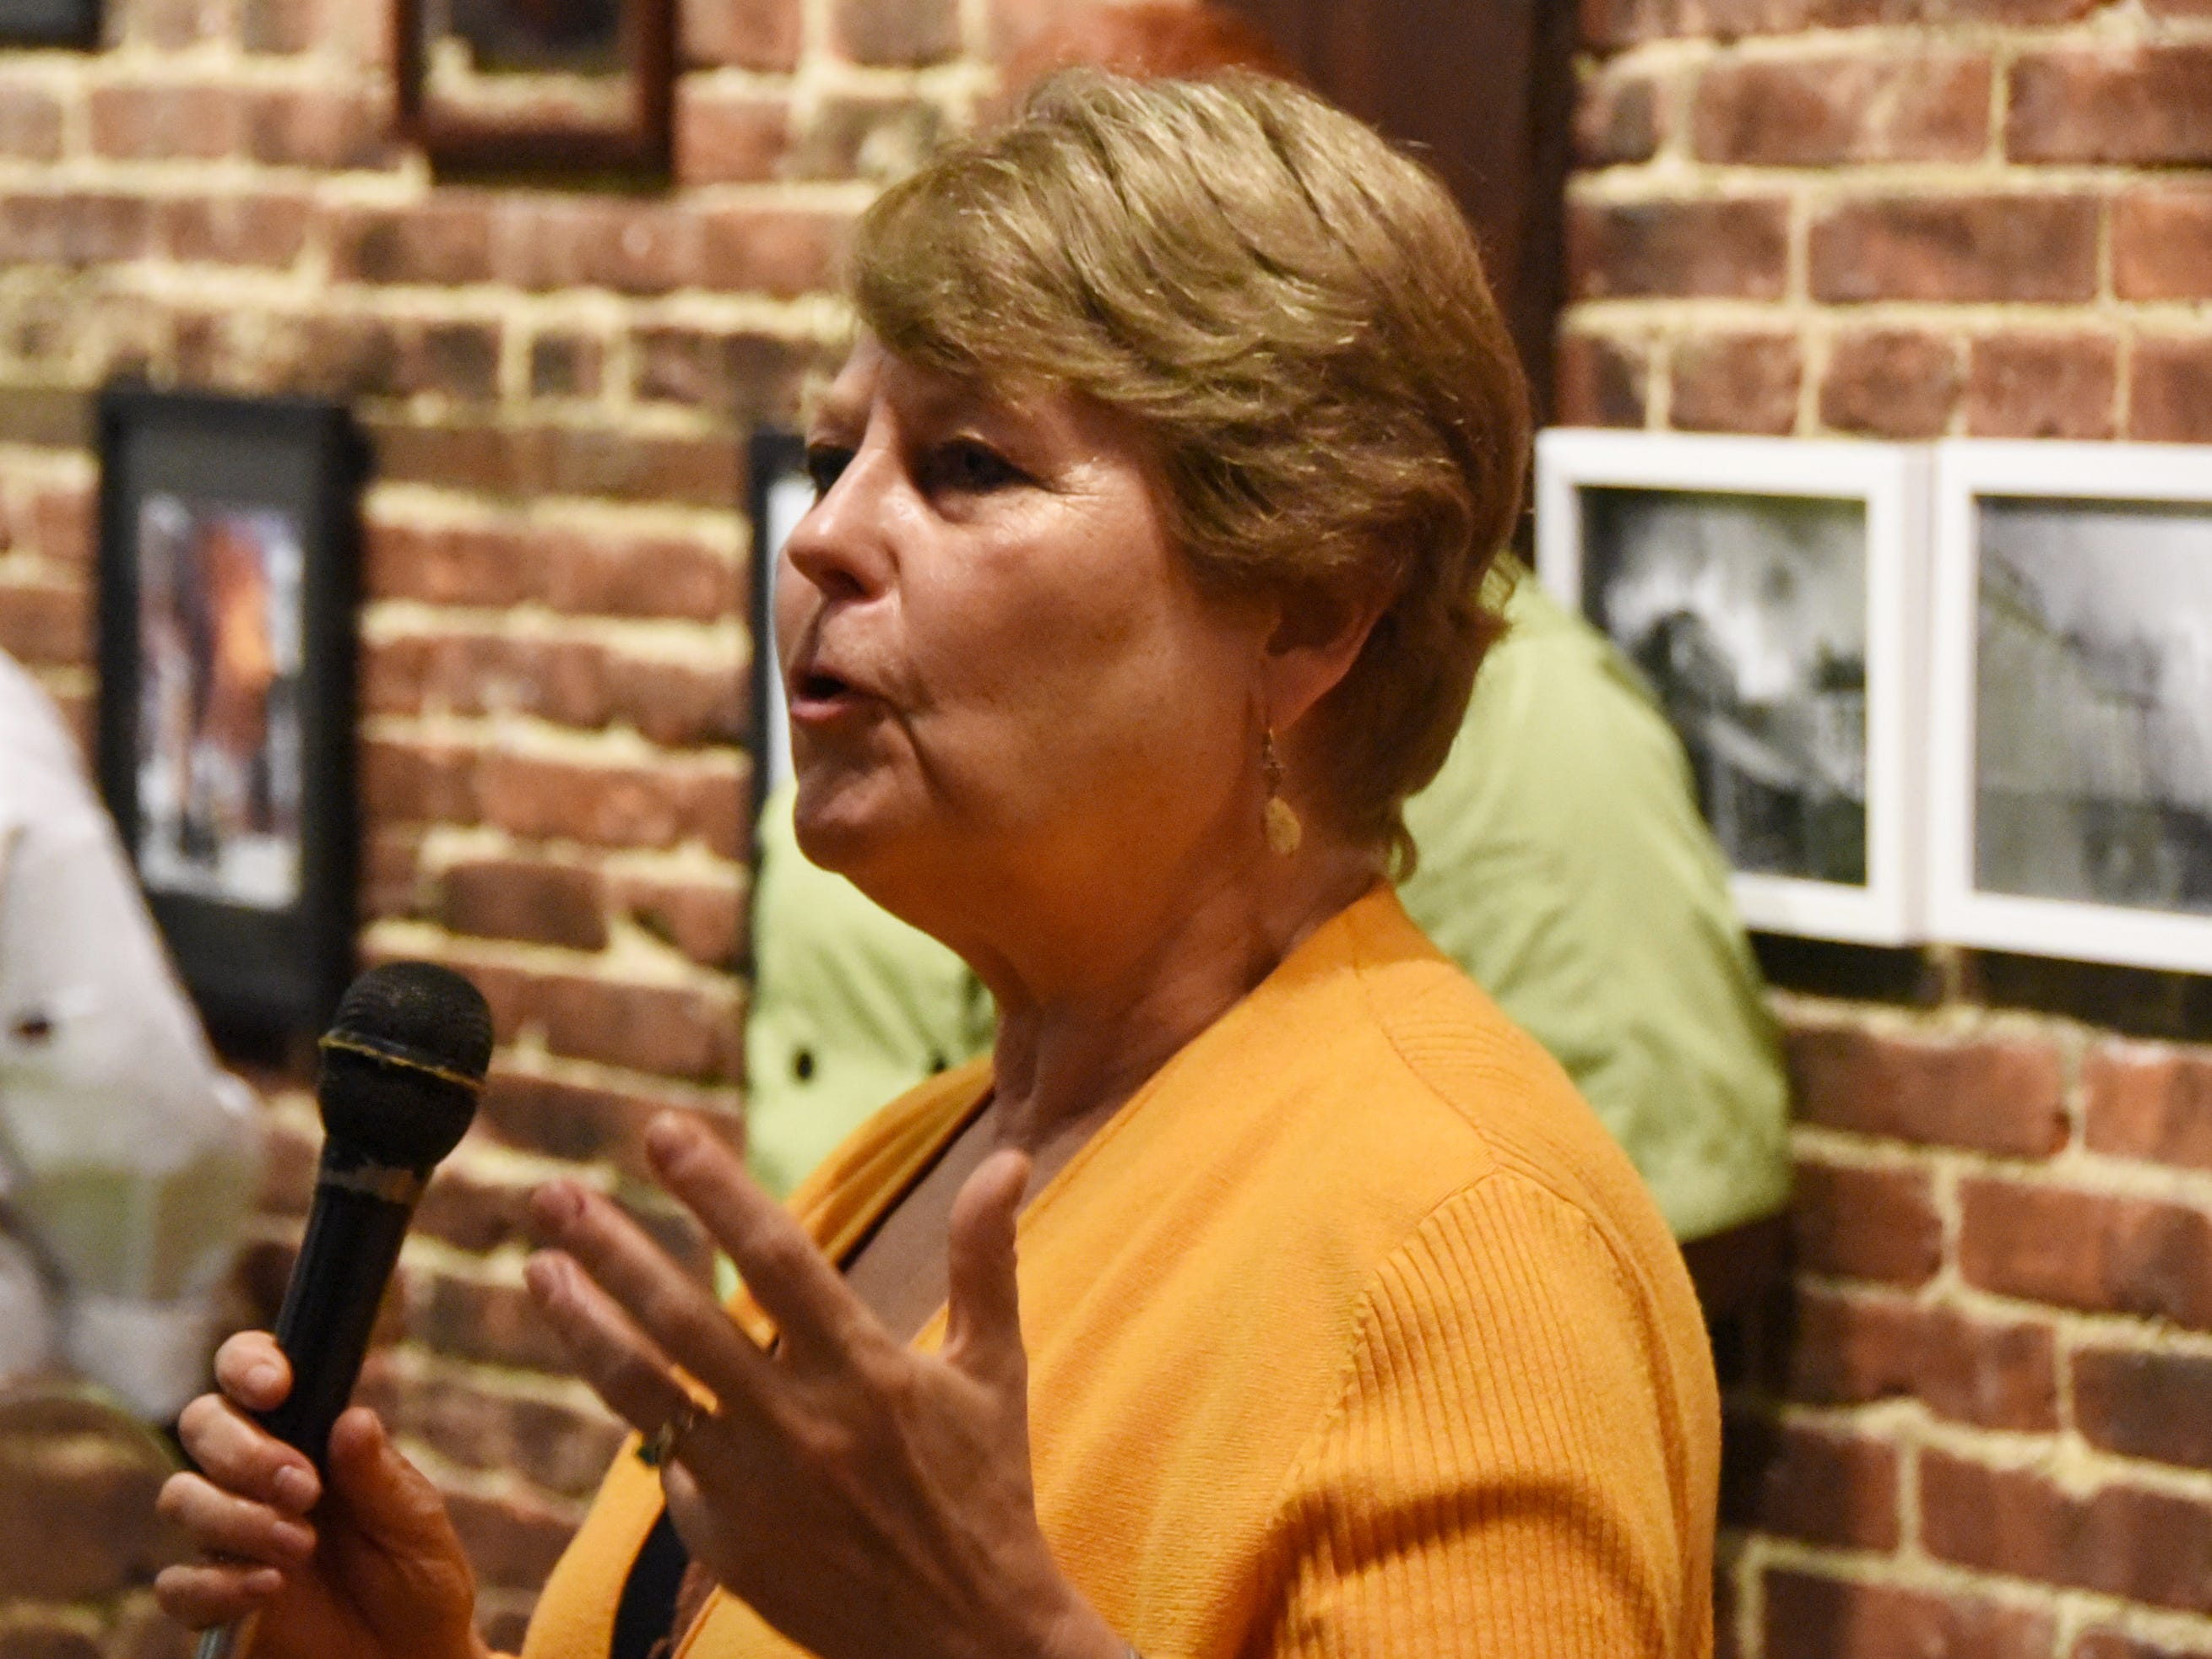 CFET board member Cathy Nevins speaks during the #WasteNot for CFET event at the FireWorks Gallery in South Camden on Saturday, September 29, 2018.  The Courier-Post partnered with the Farm & Fisherman Tavern in Cherry Hill and other community organizations to hold the event that offered a special tasting, farm tour and community conversation about reducing food waste.